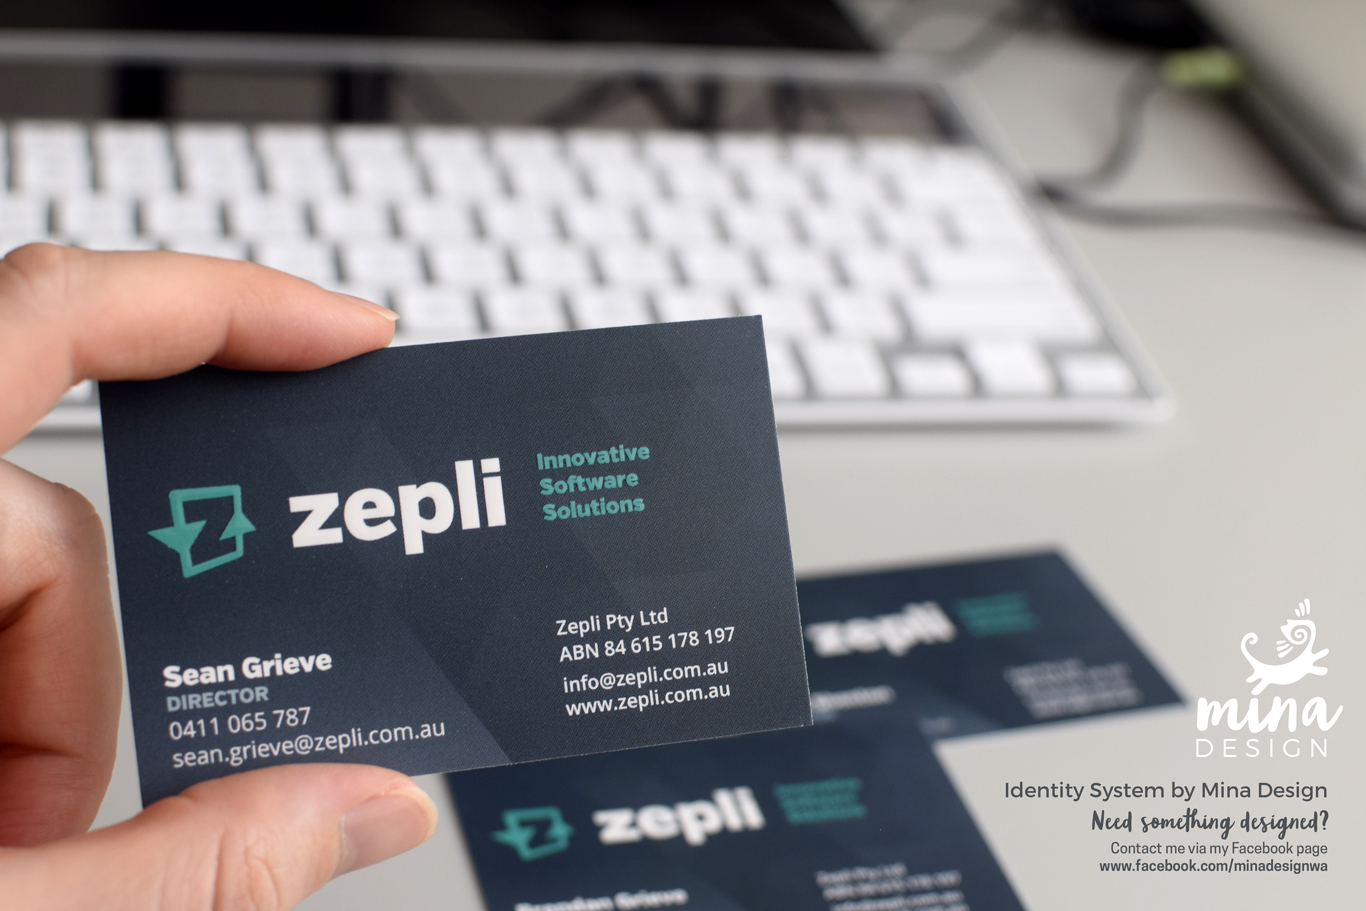 Zepli Business Cards by Mina Design